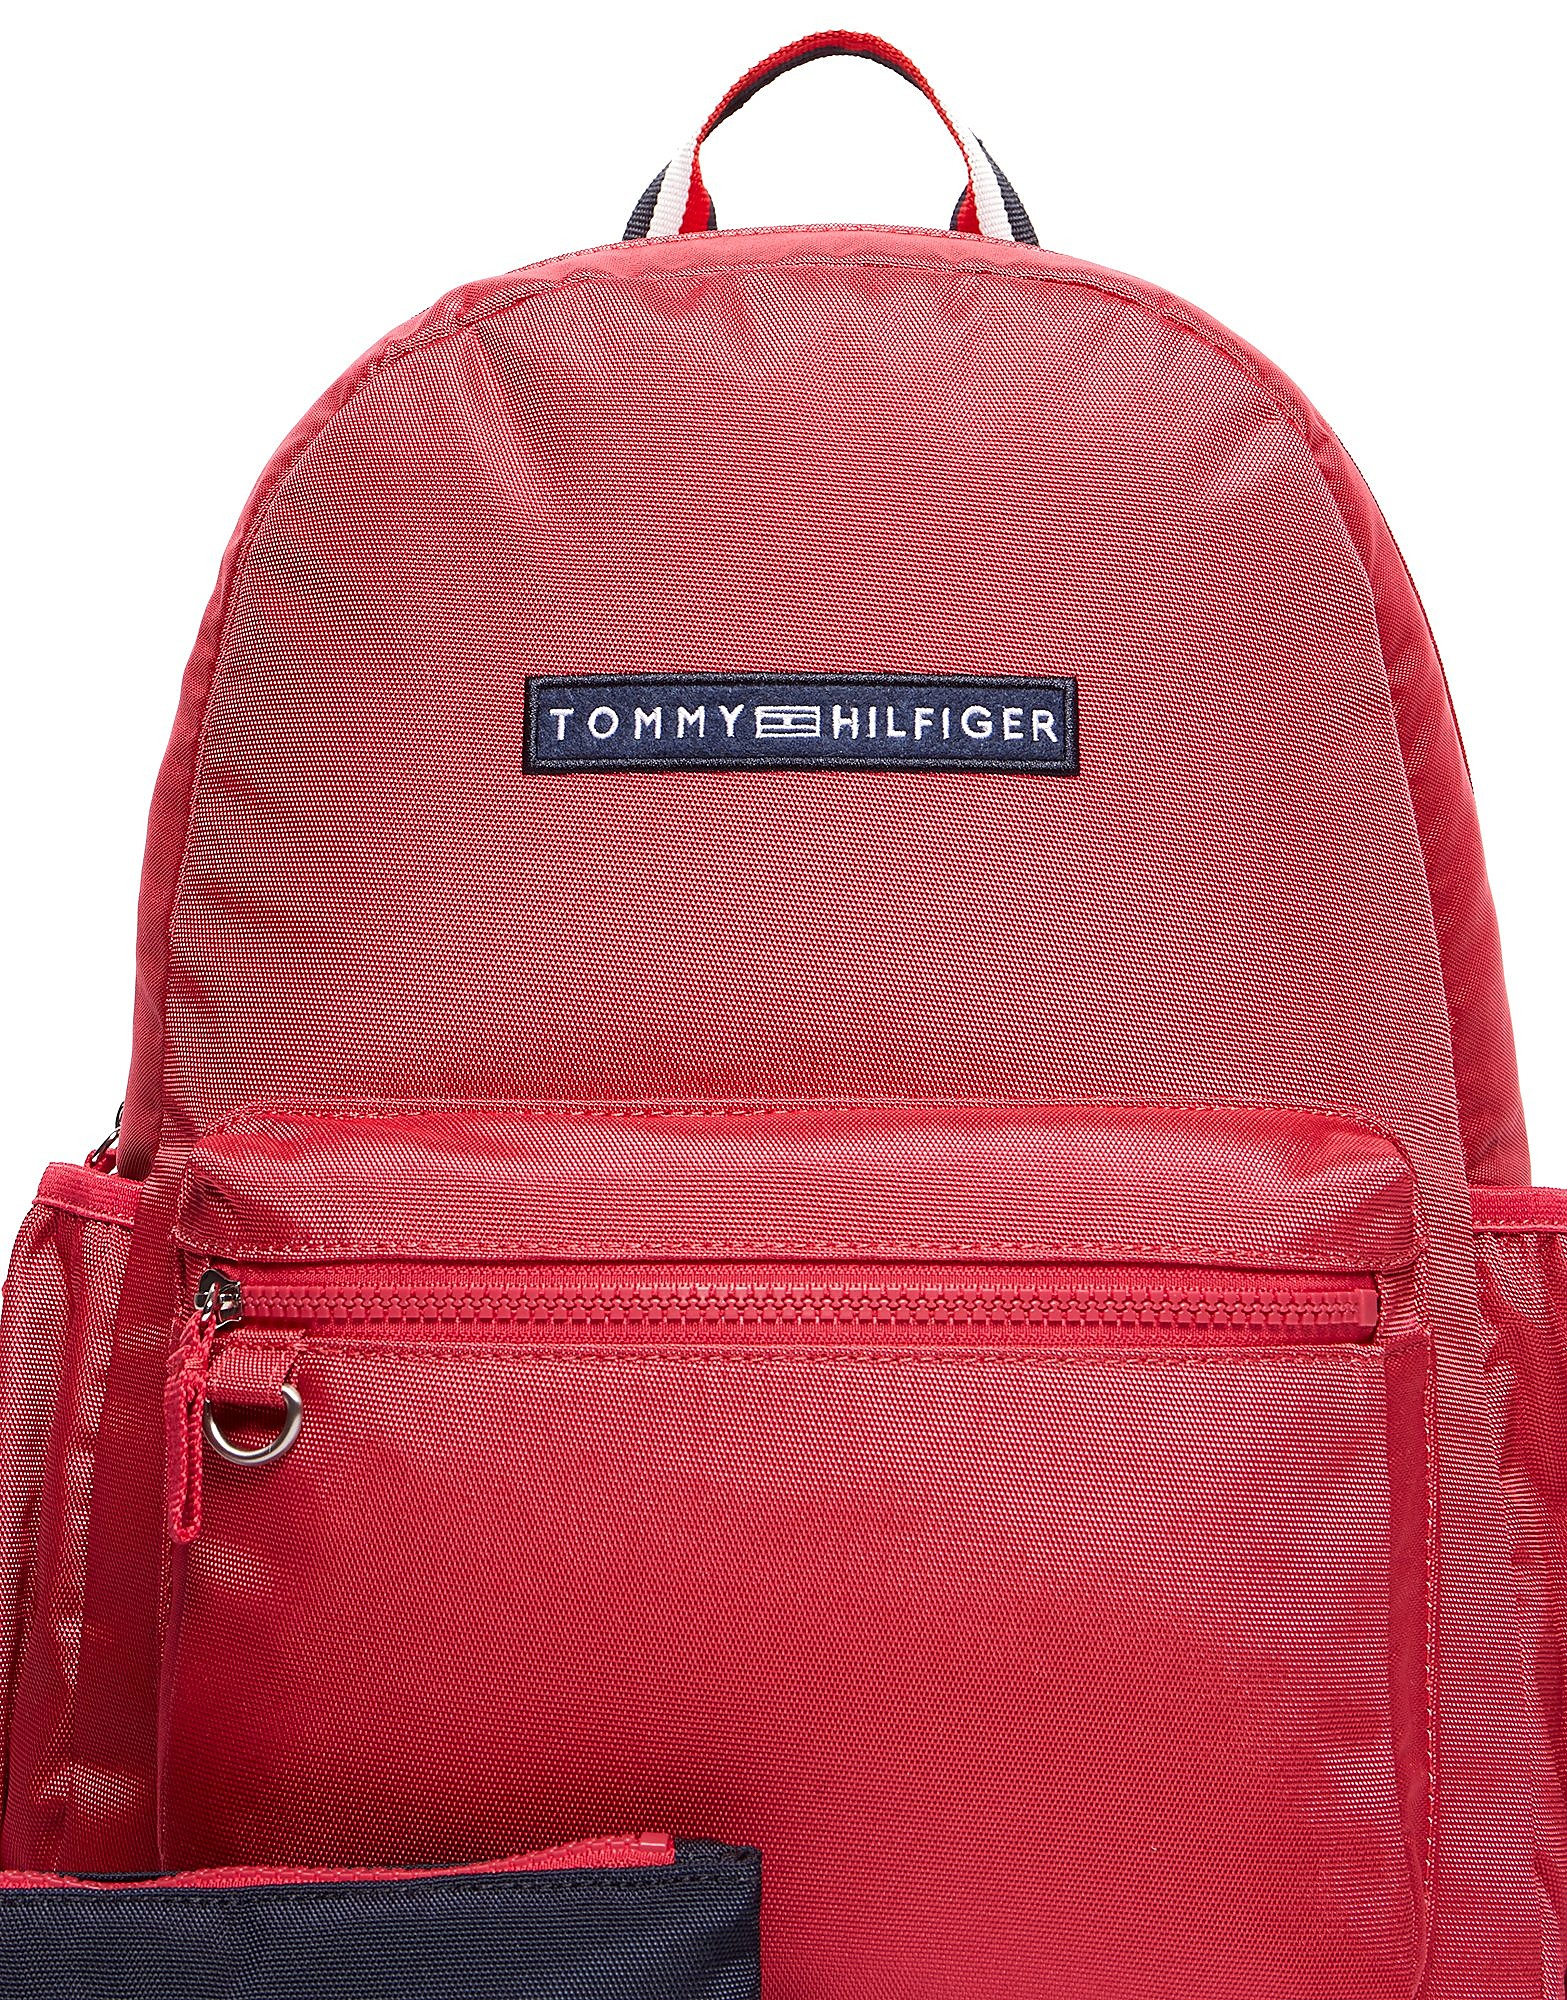 Tommy Hilfiger Basic Backpack